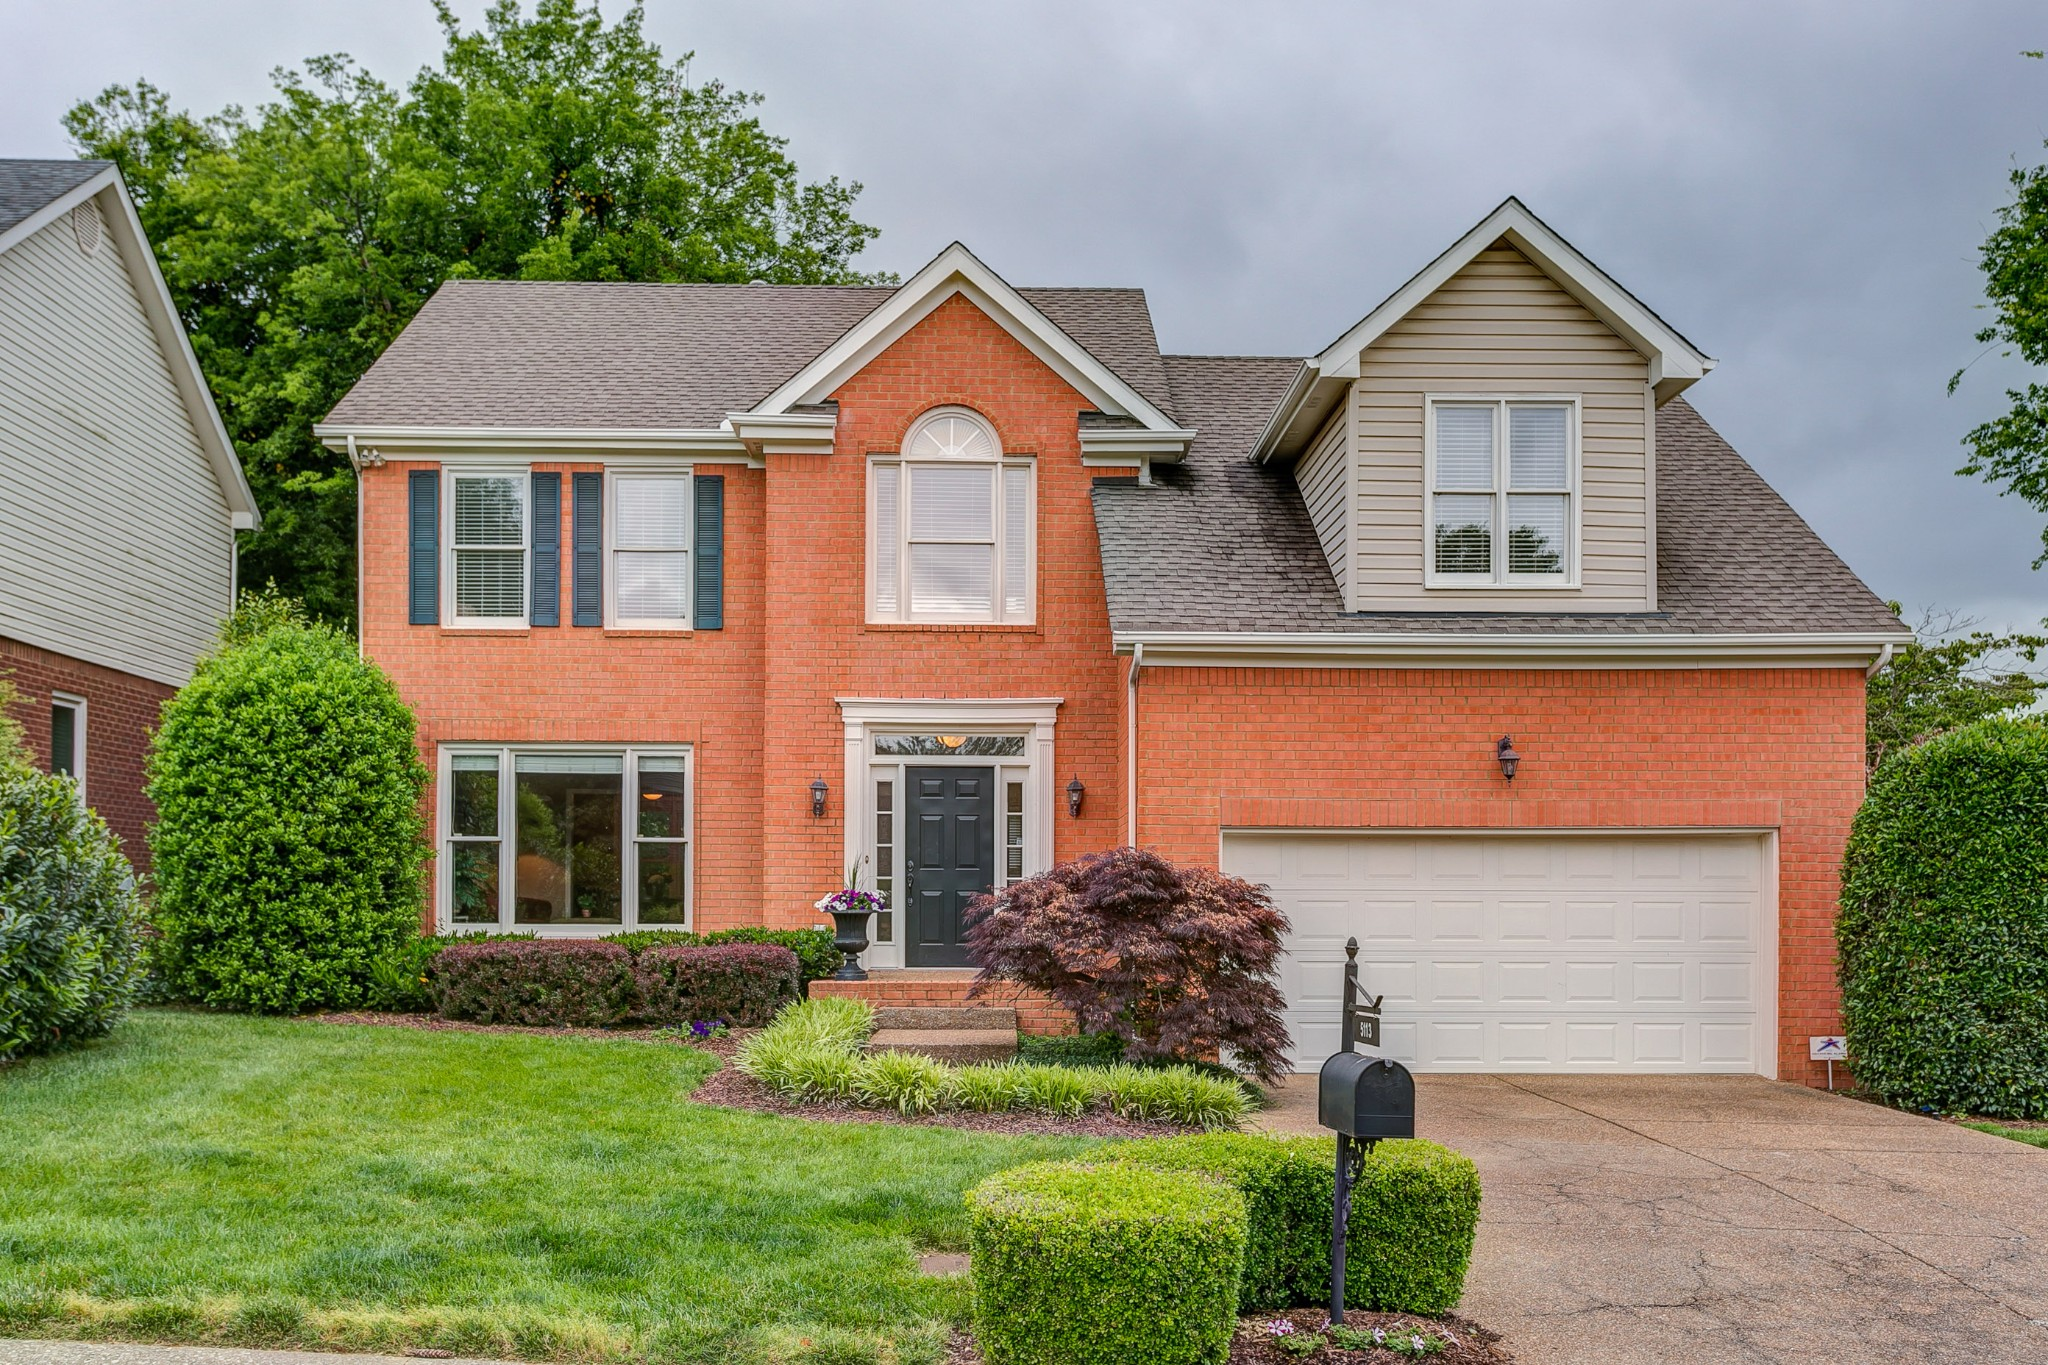 Delightful location -Walk to the Pool, Tennis Courts, Basketball Court and playground. Fun neighborhood minutes to shopping and I-65. Hardwoods and Vaulted Ceiling in family room. Bonus room could be 4th BR. Seller will give allowance for carpet or buyer can use for hardwood. Sweet Home Ready for New Owners. Won`t last!